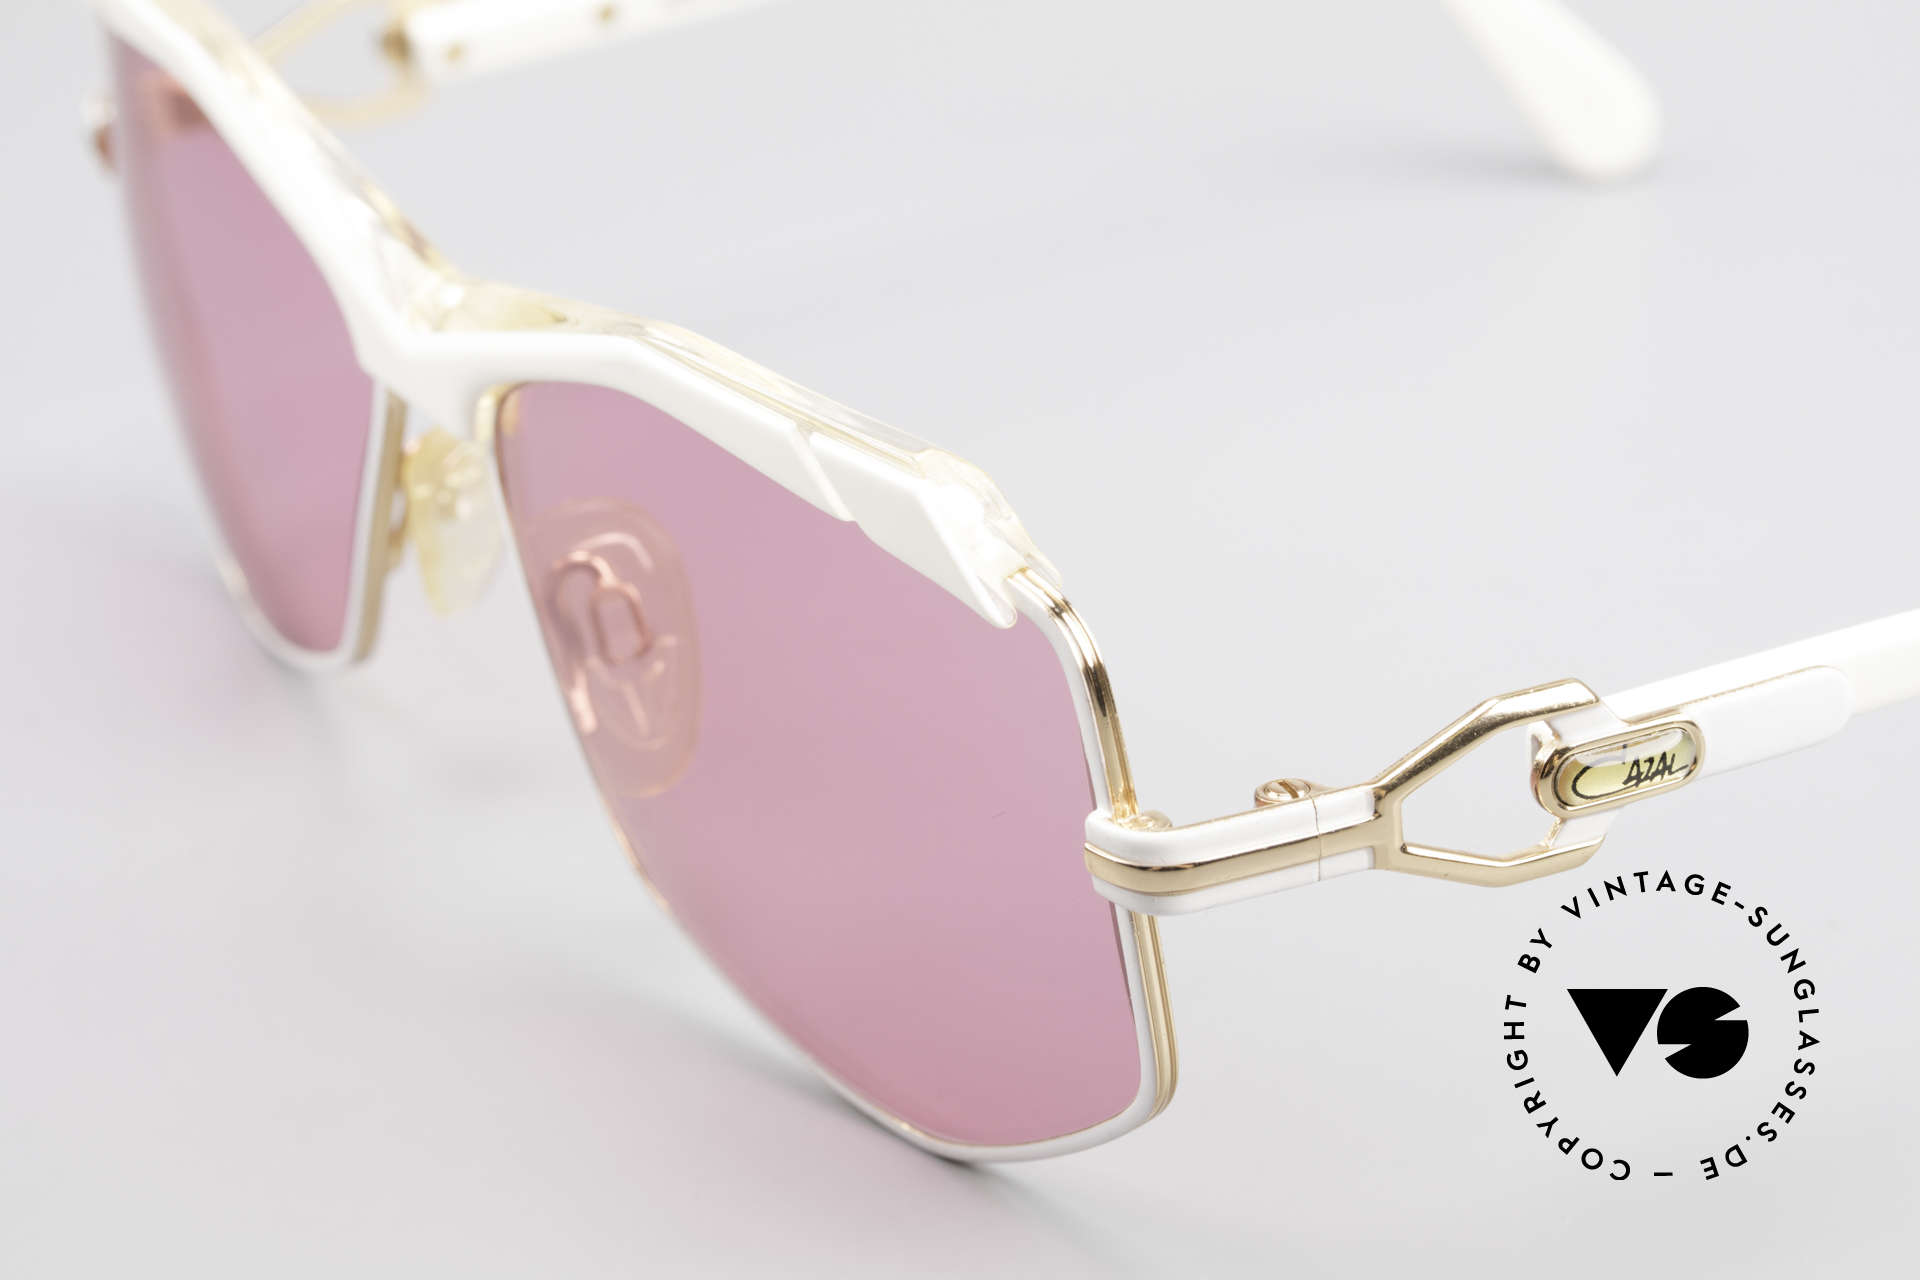 Cazal 230 Pink Cazal Sunglasses 80's, new old stock (like all our rare vintage Cazals), Made for Women